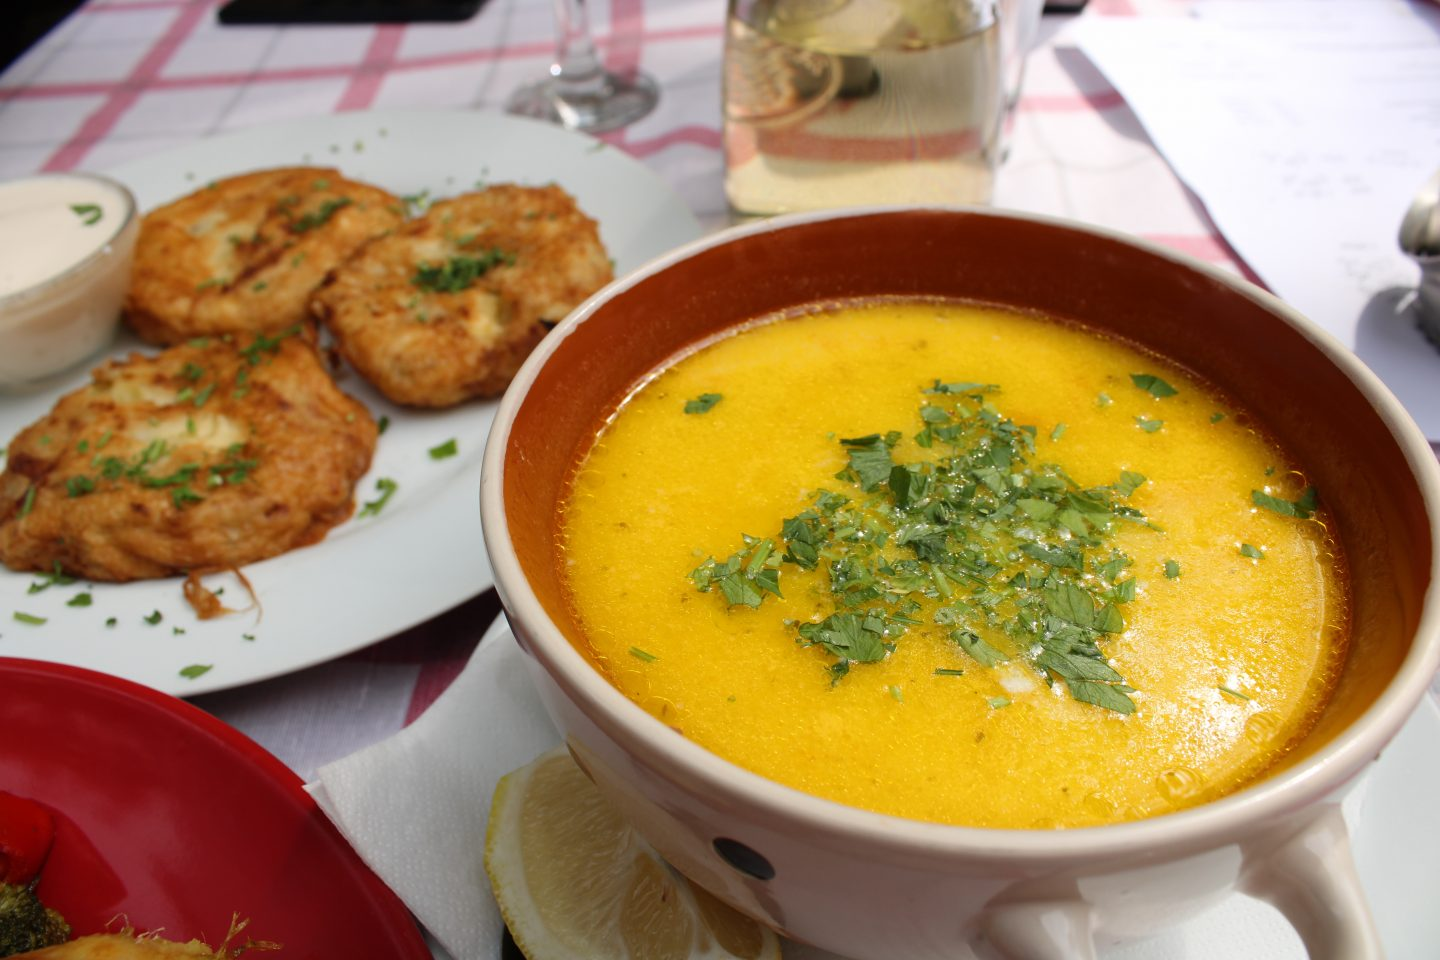 traditional bulgarian food in sofia: A bowl of yellow chicken soup, with potato pancakes just out of focus in the background